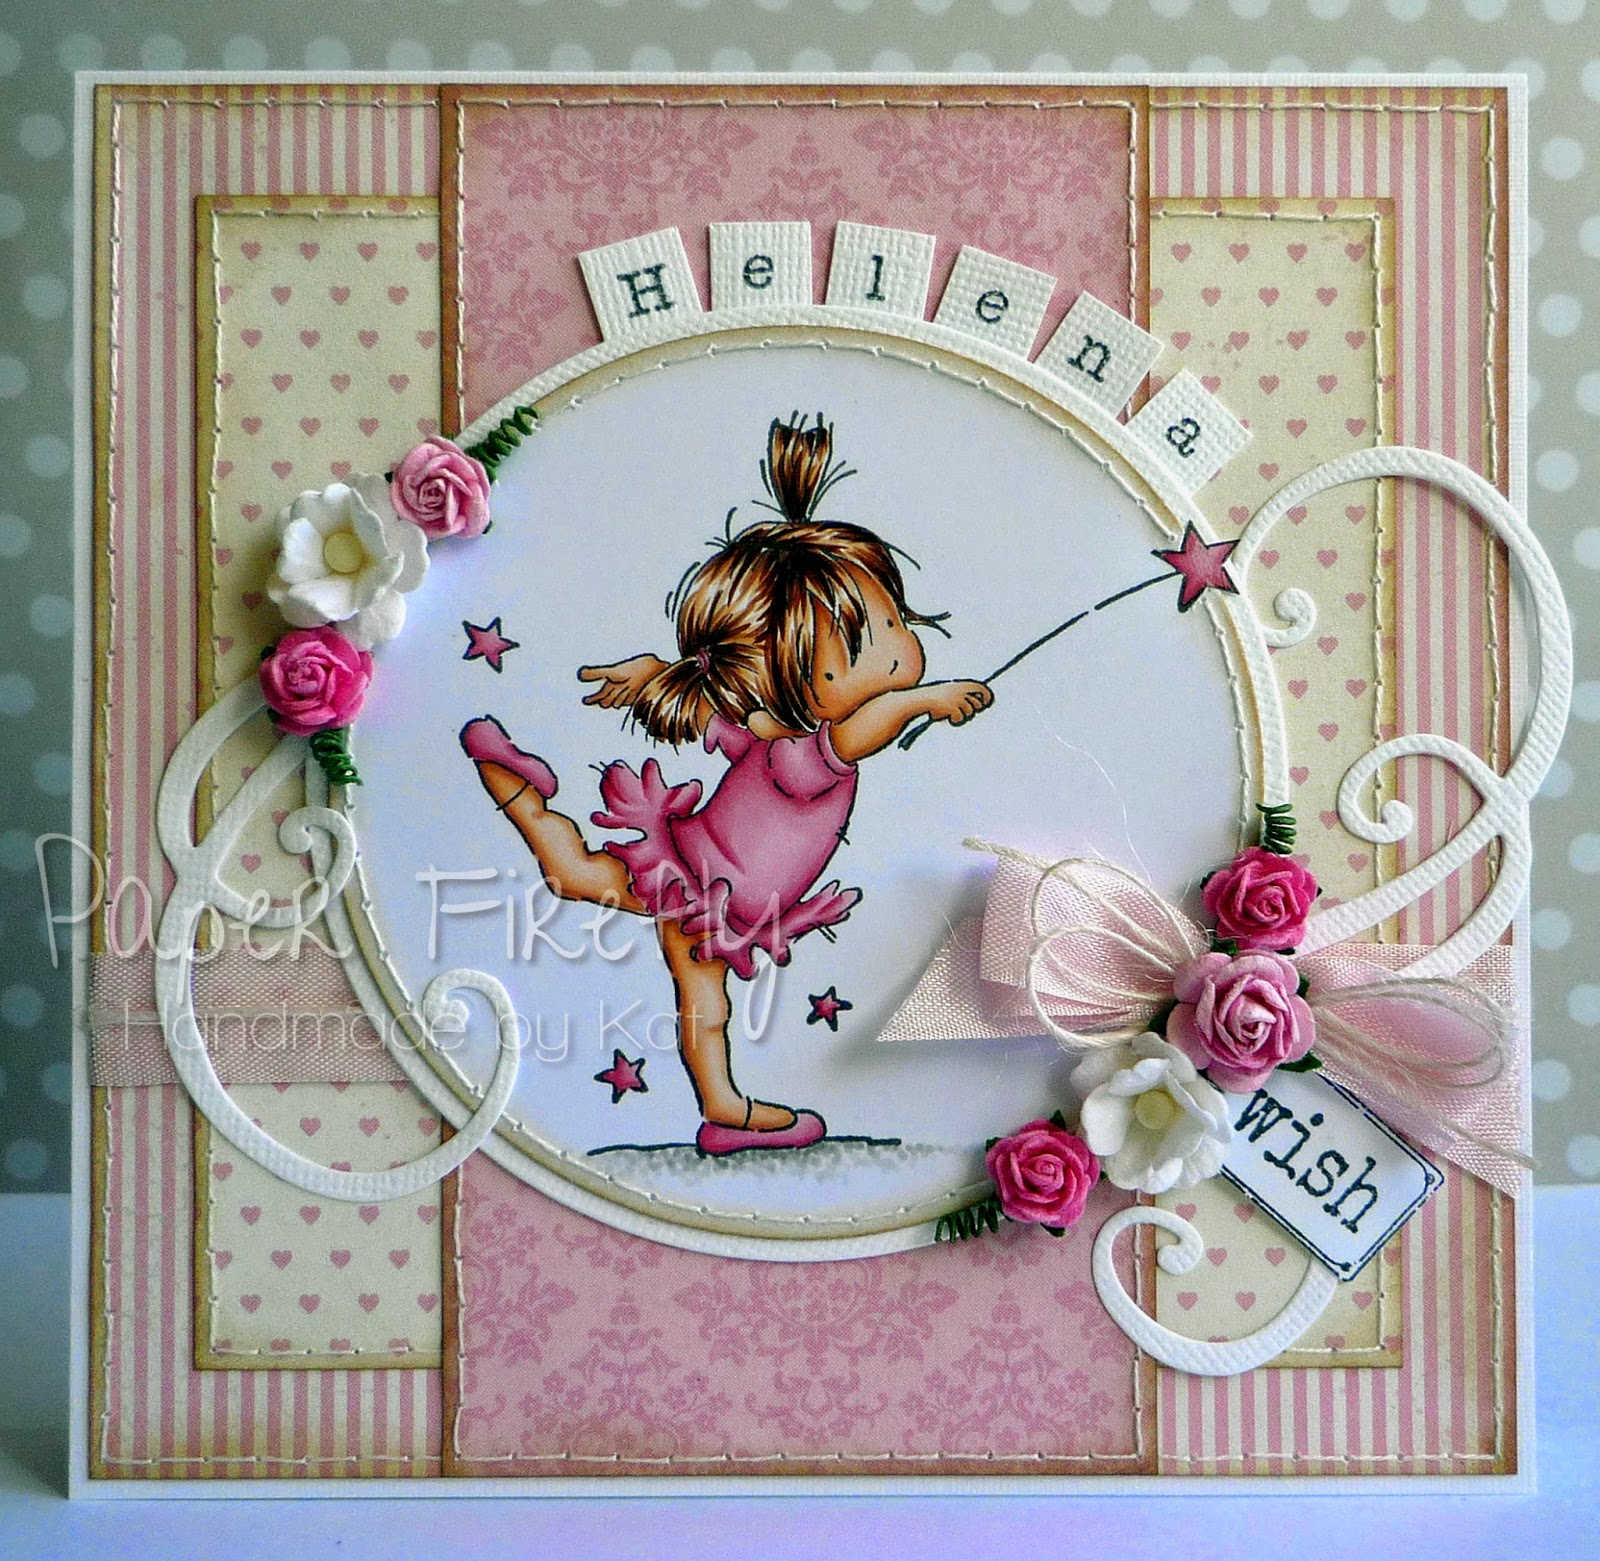 Handmade card; pink and girly featuring a cute ballerina